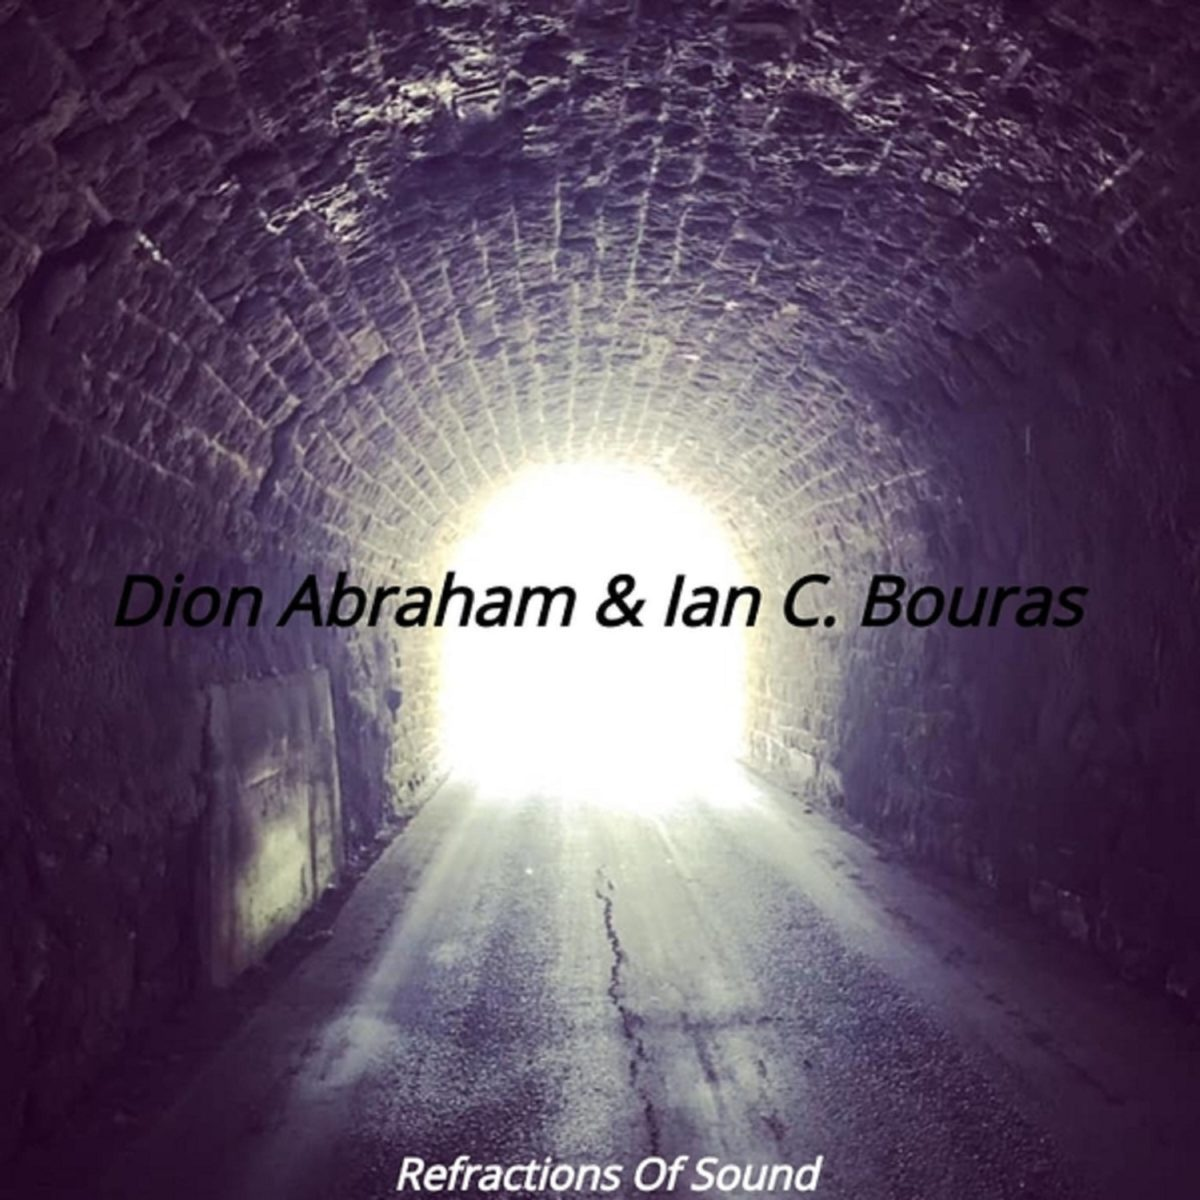 Ian C. Bouras and Dion Abraham, Refractions of Sound